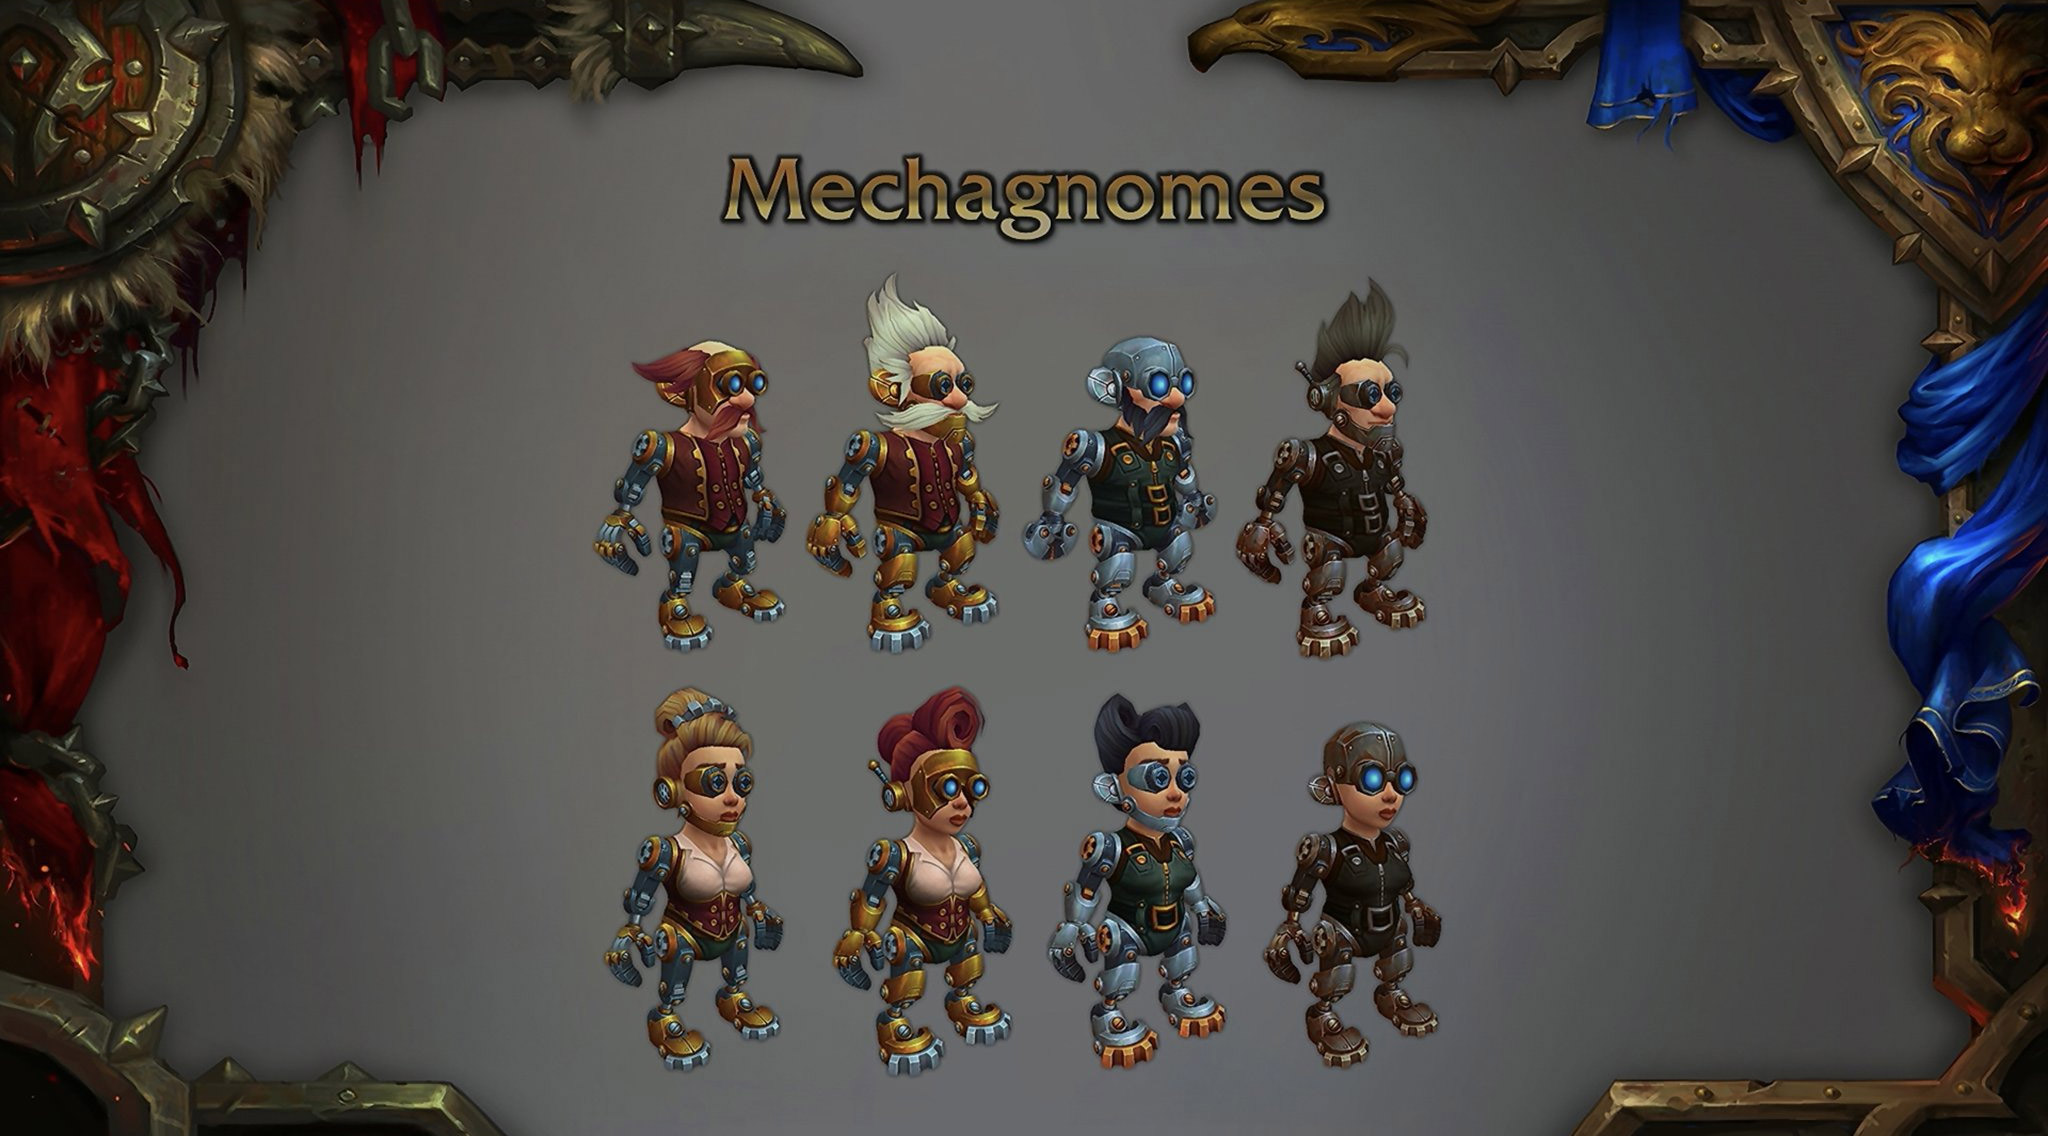 Les Mecagnomes dans World of Warcraft